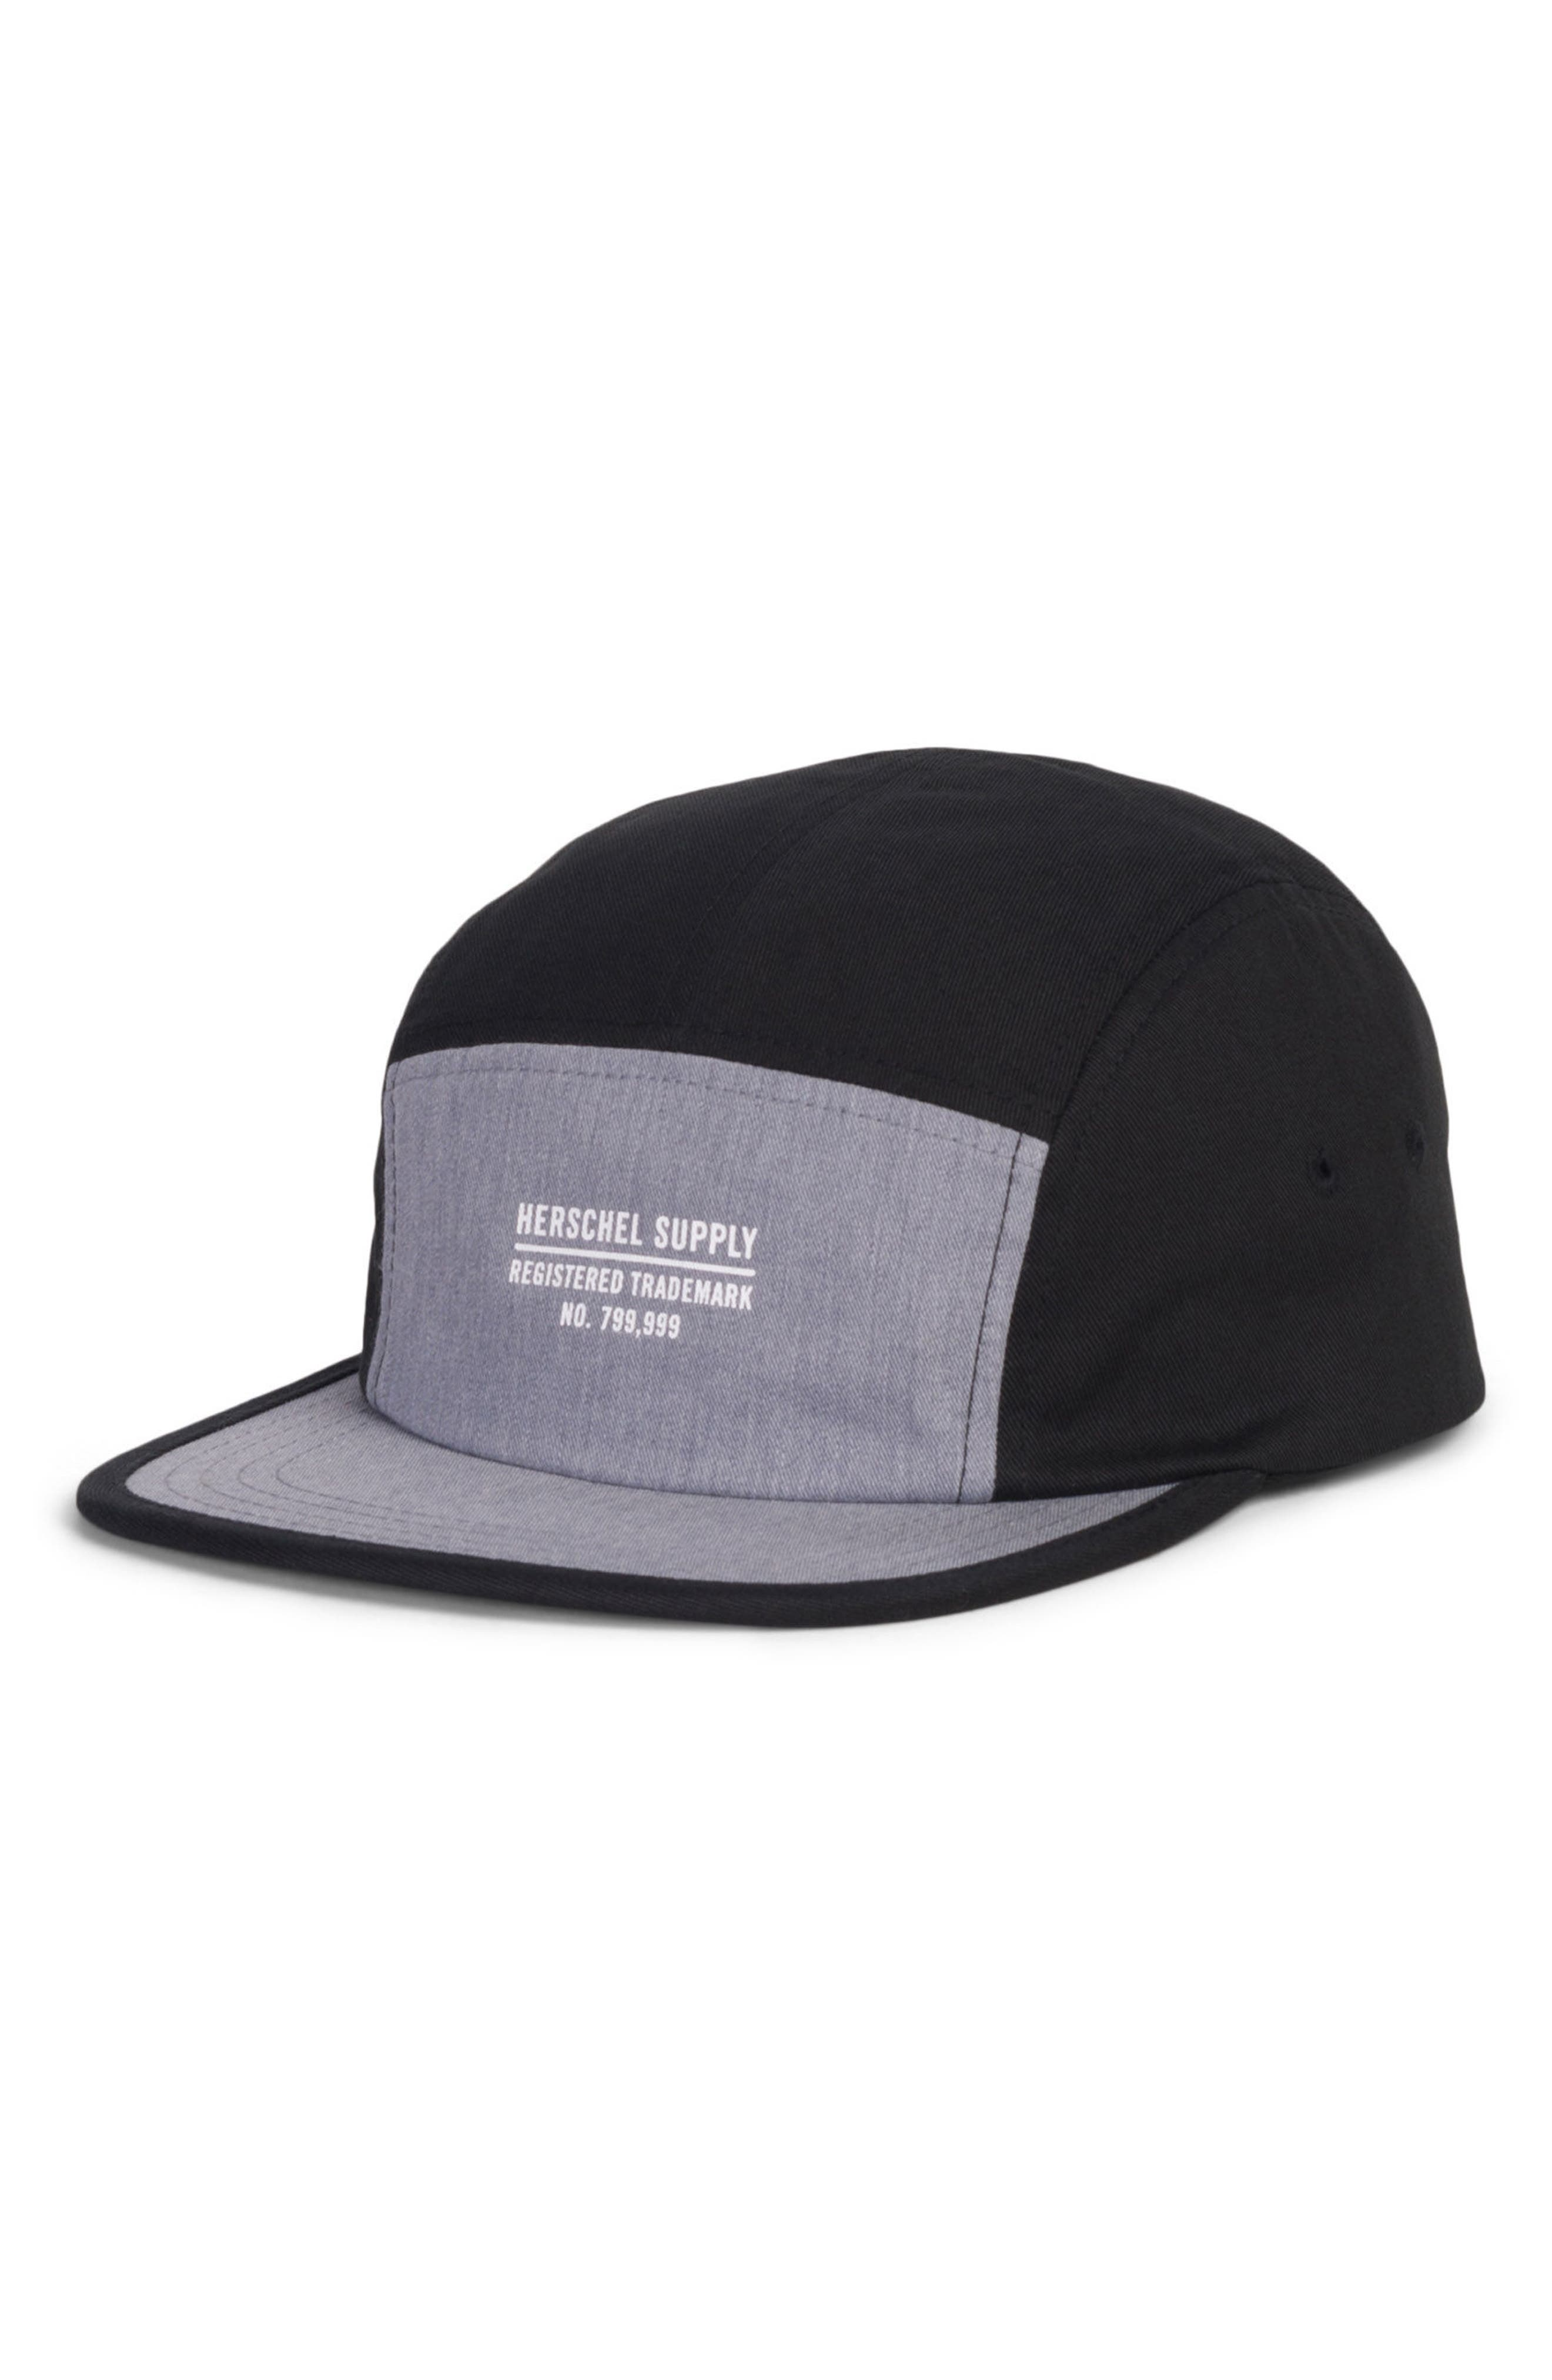 Glendale Colorblocked Cap,                             Main thumbnail 1, color,                             Black/ Heather Grey